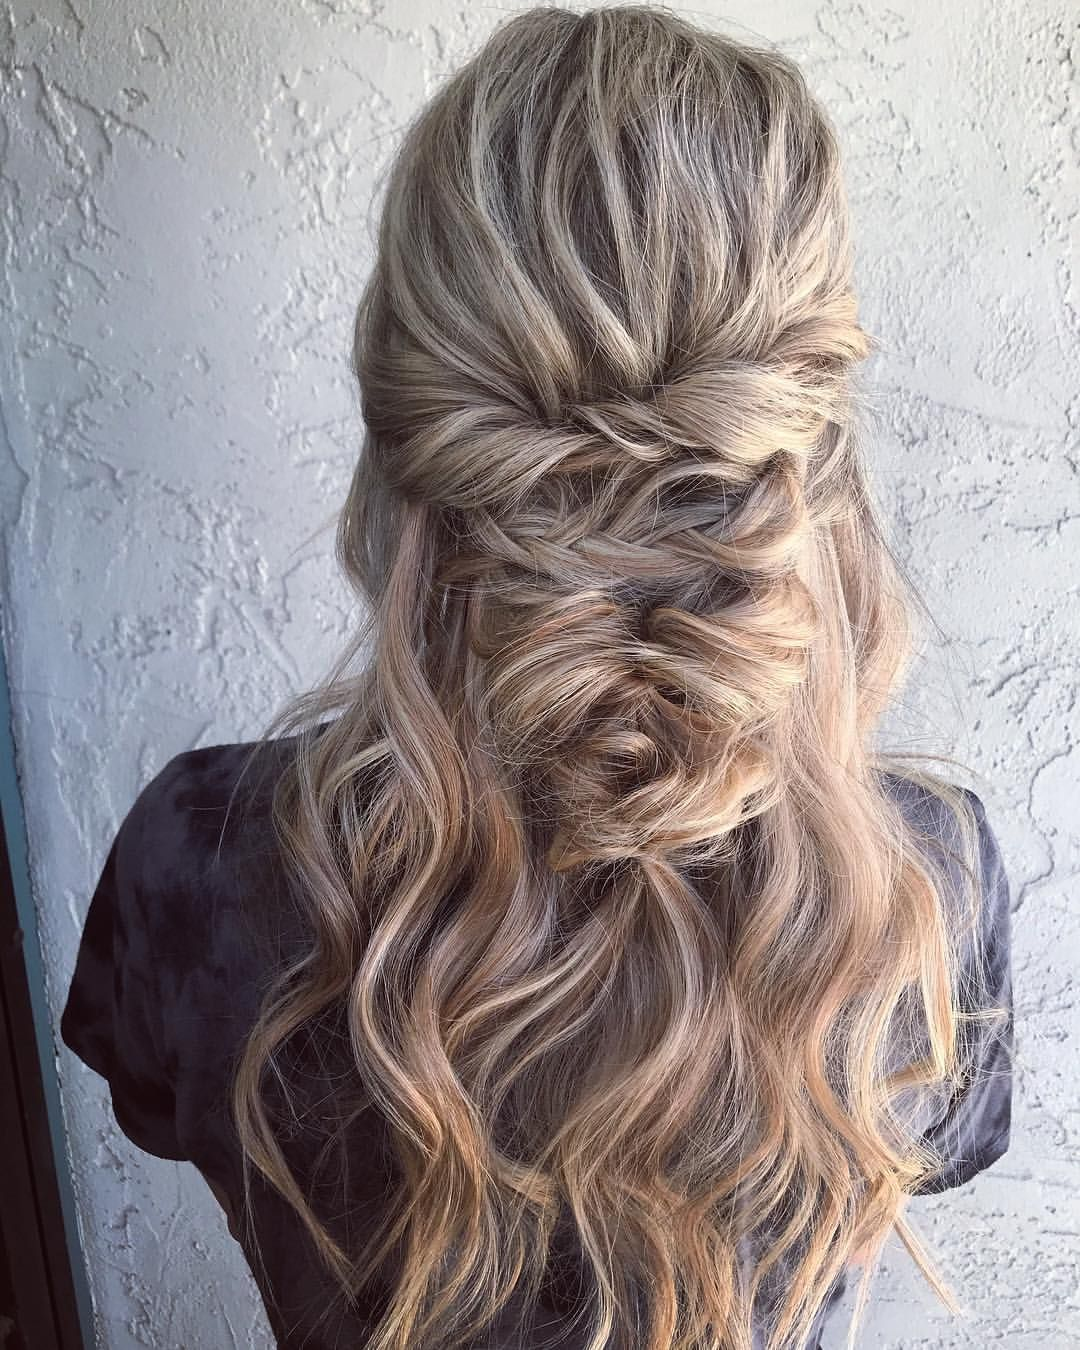 Pin by Maddie on ~ hairstyles ~   Cute wedding hairstyles, Hair styles, Wedding hairstyles